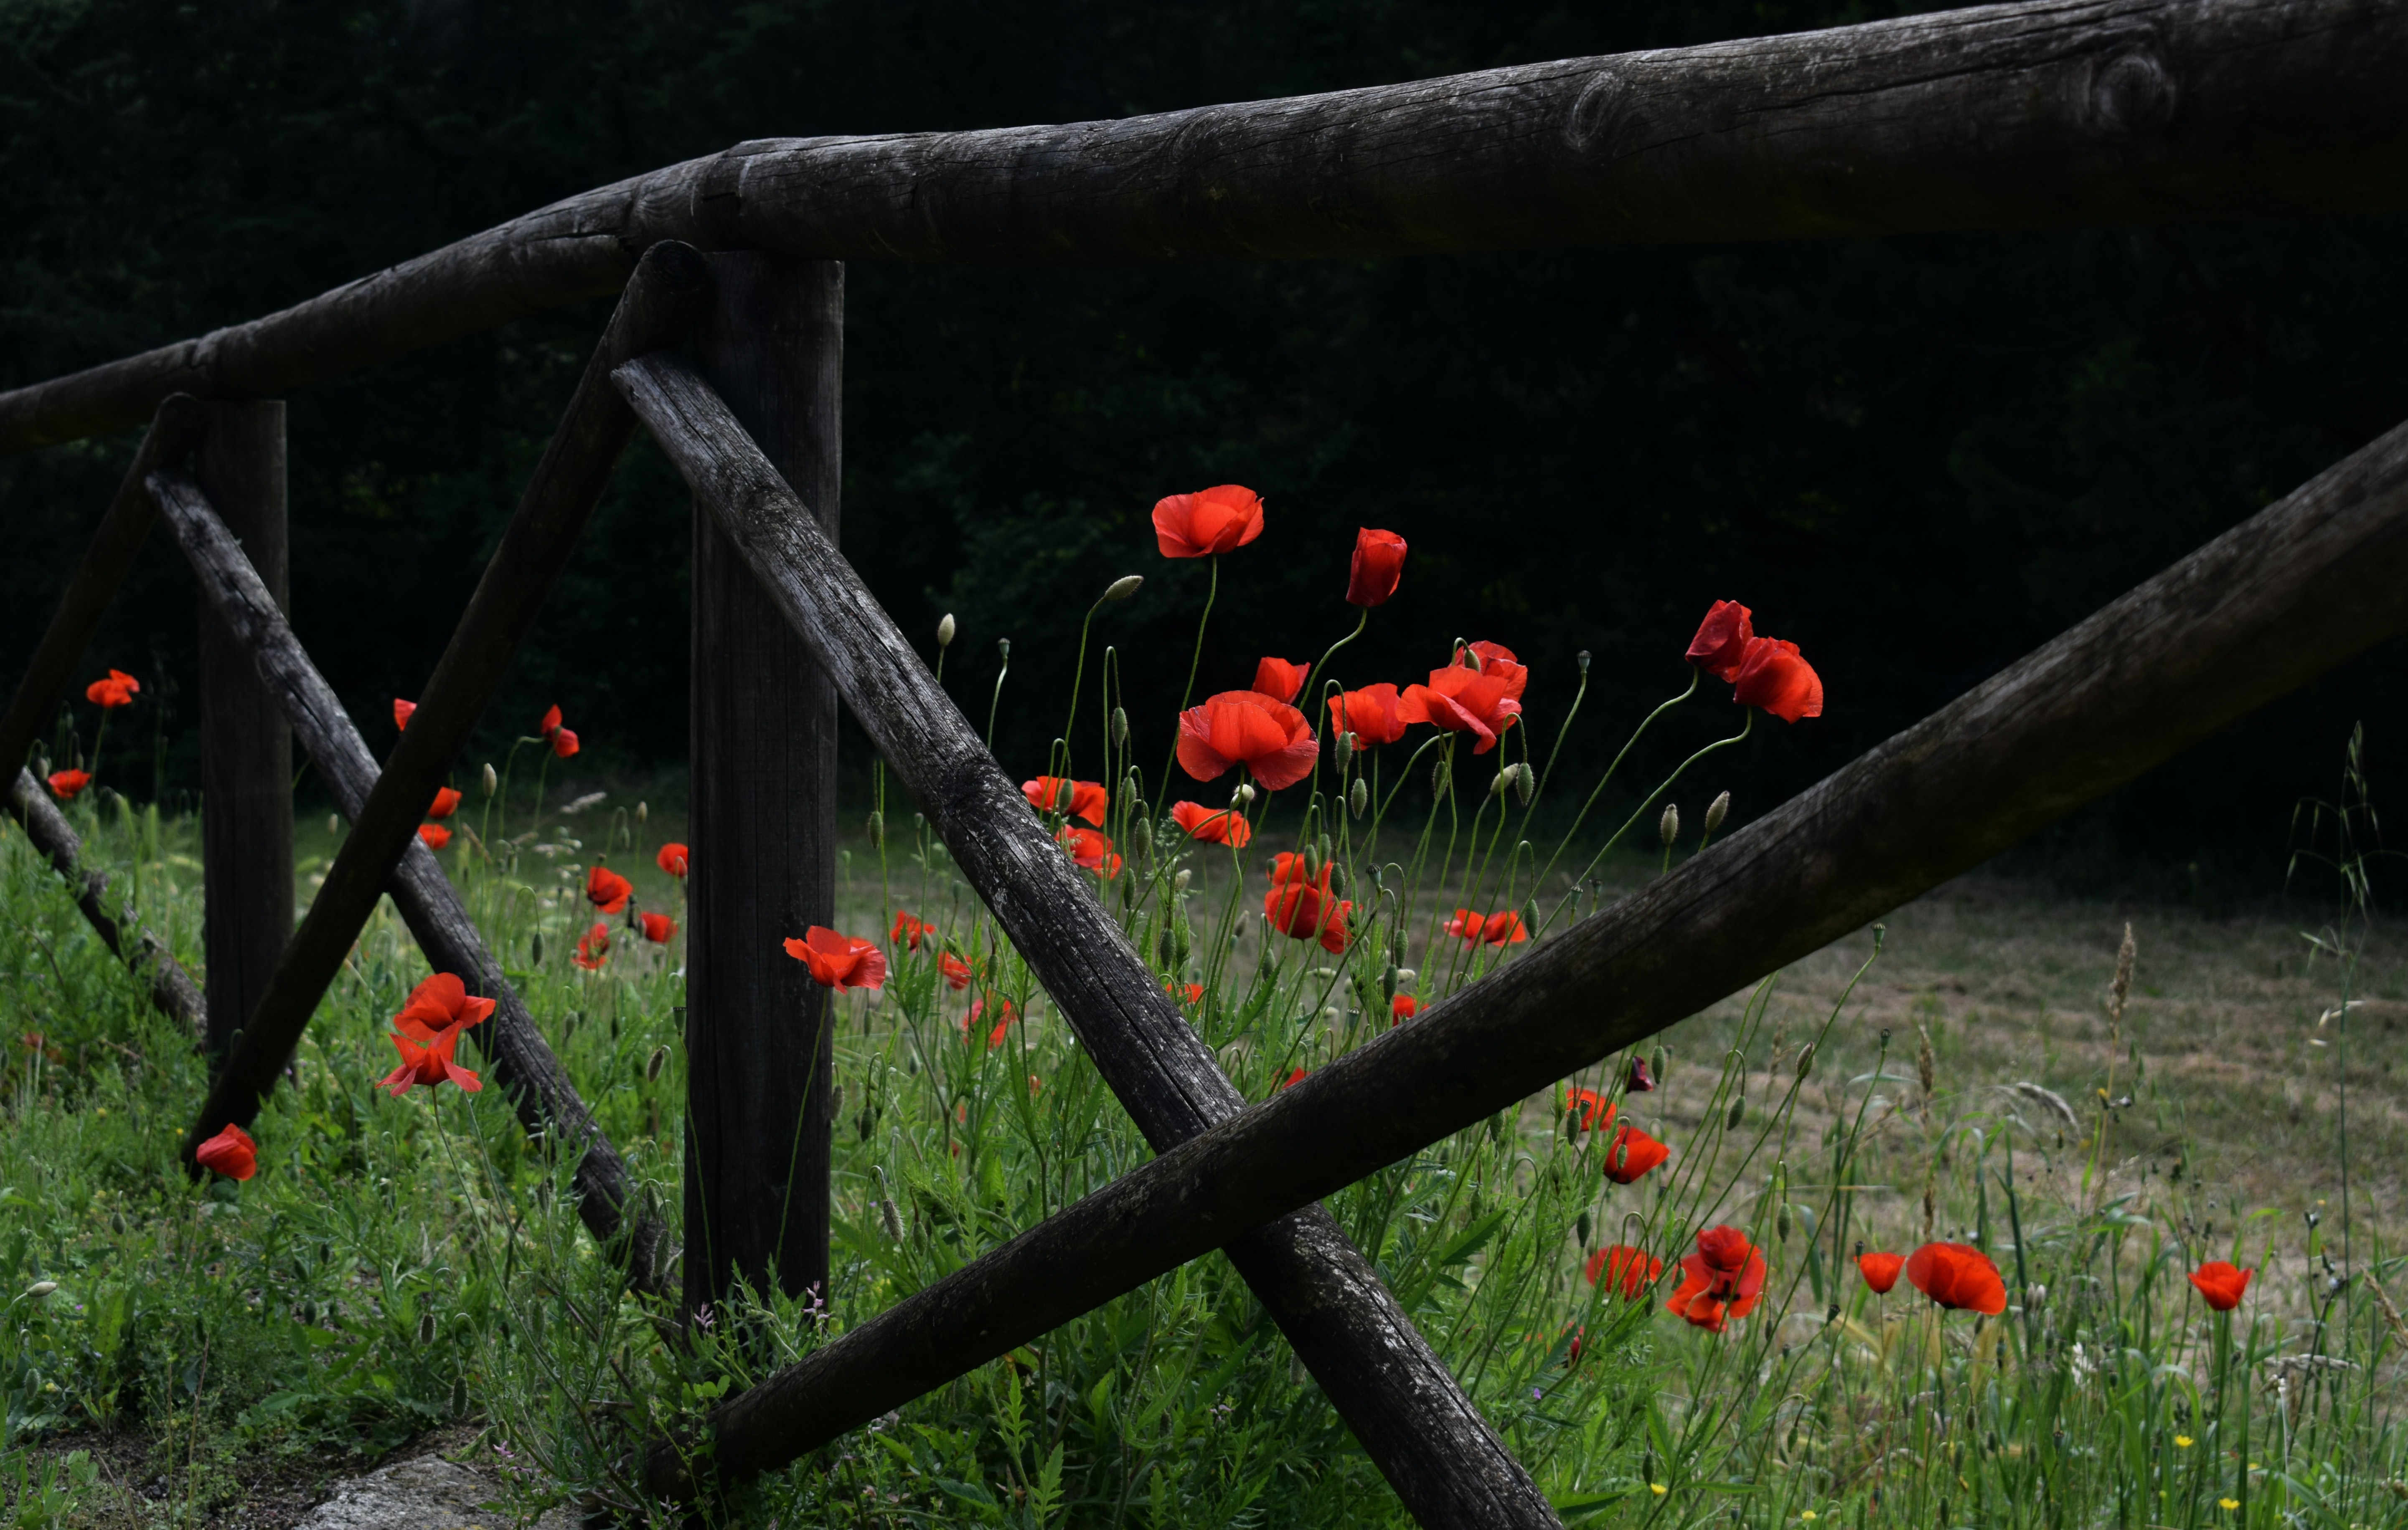 red petaled flowers near brown wooden fence